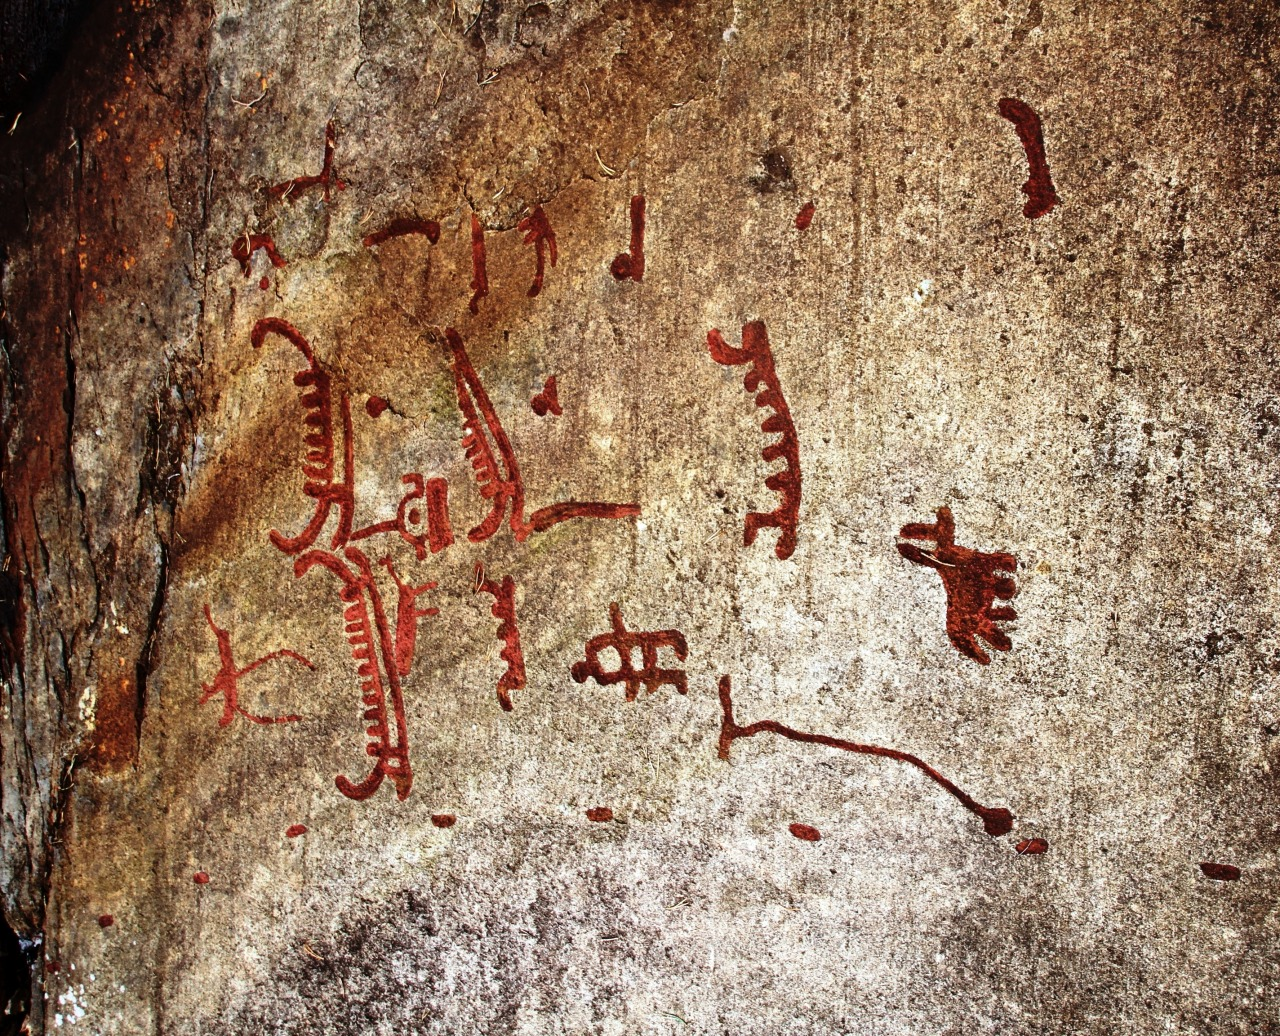 Section from the Bronze Age rock carvings in Tanum, Sweden.  The rock carvings in Tanum, in the north of Bohuslän, are a unique artistic achievement not only for their rich and varied motifs (depictions of humans and animals, weapons, boats and other subjects) but also for their cultural and chronological unity. They reveal the life and beliefs of people in Europe during the Bronze Age and are remarkable for their large numbers and outstanding quality. You can read more about this site on UNESCO World Heritage.  Photo courtesy & taken by Bjoertvedt